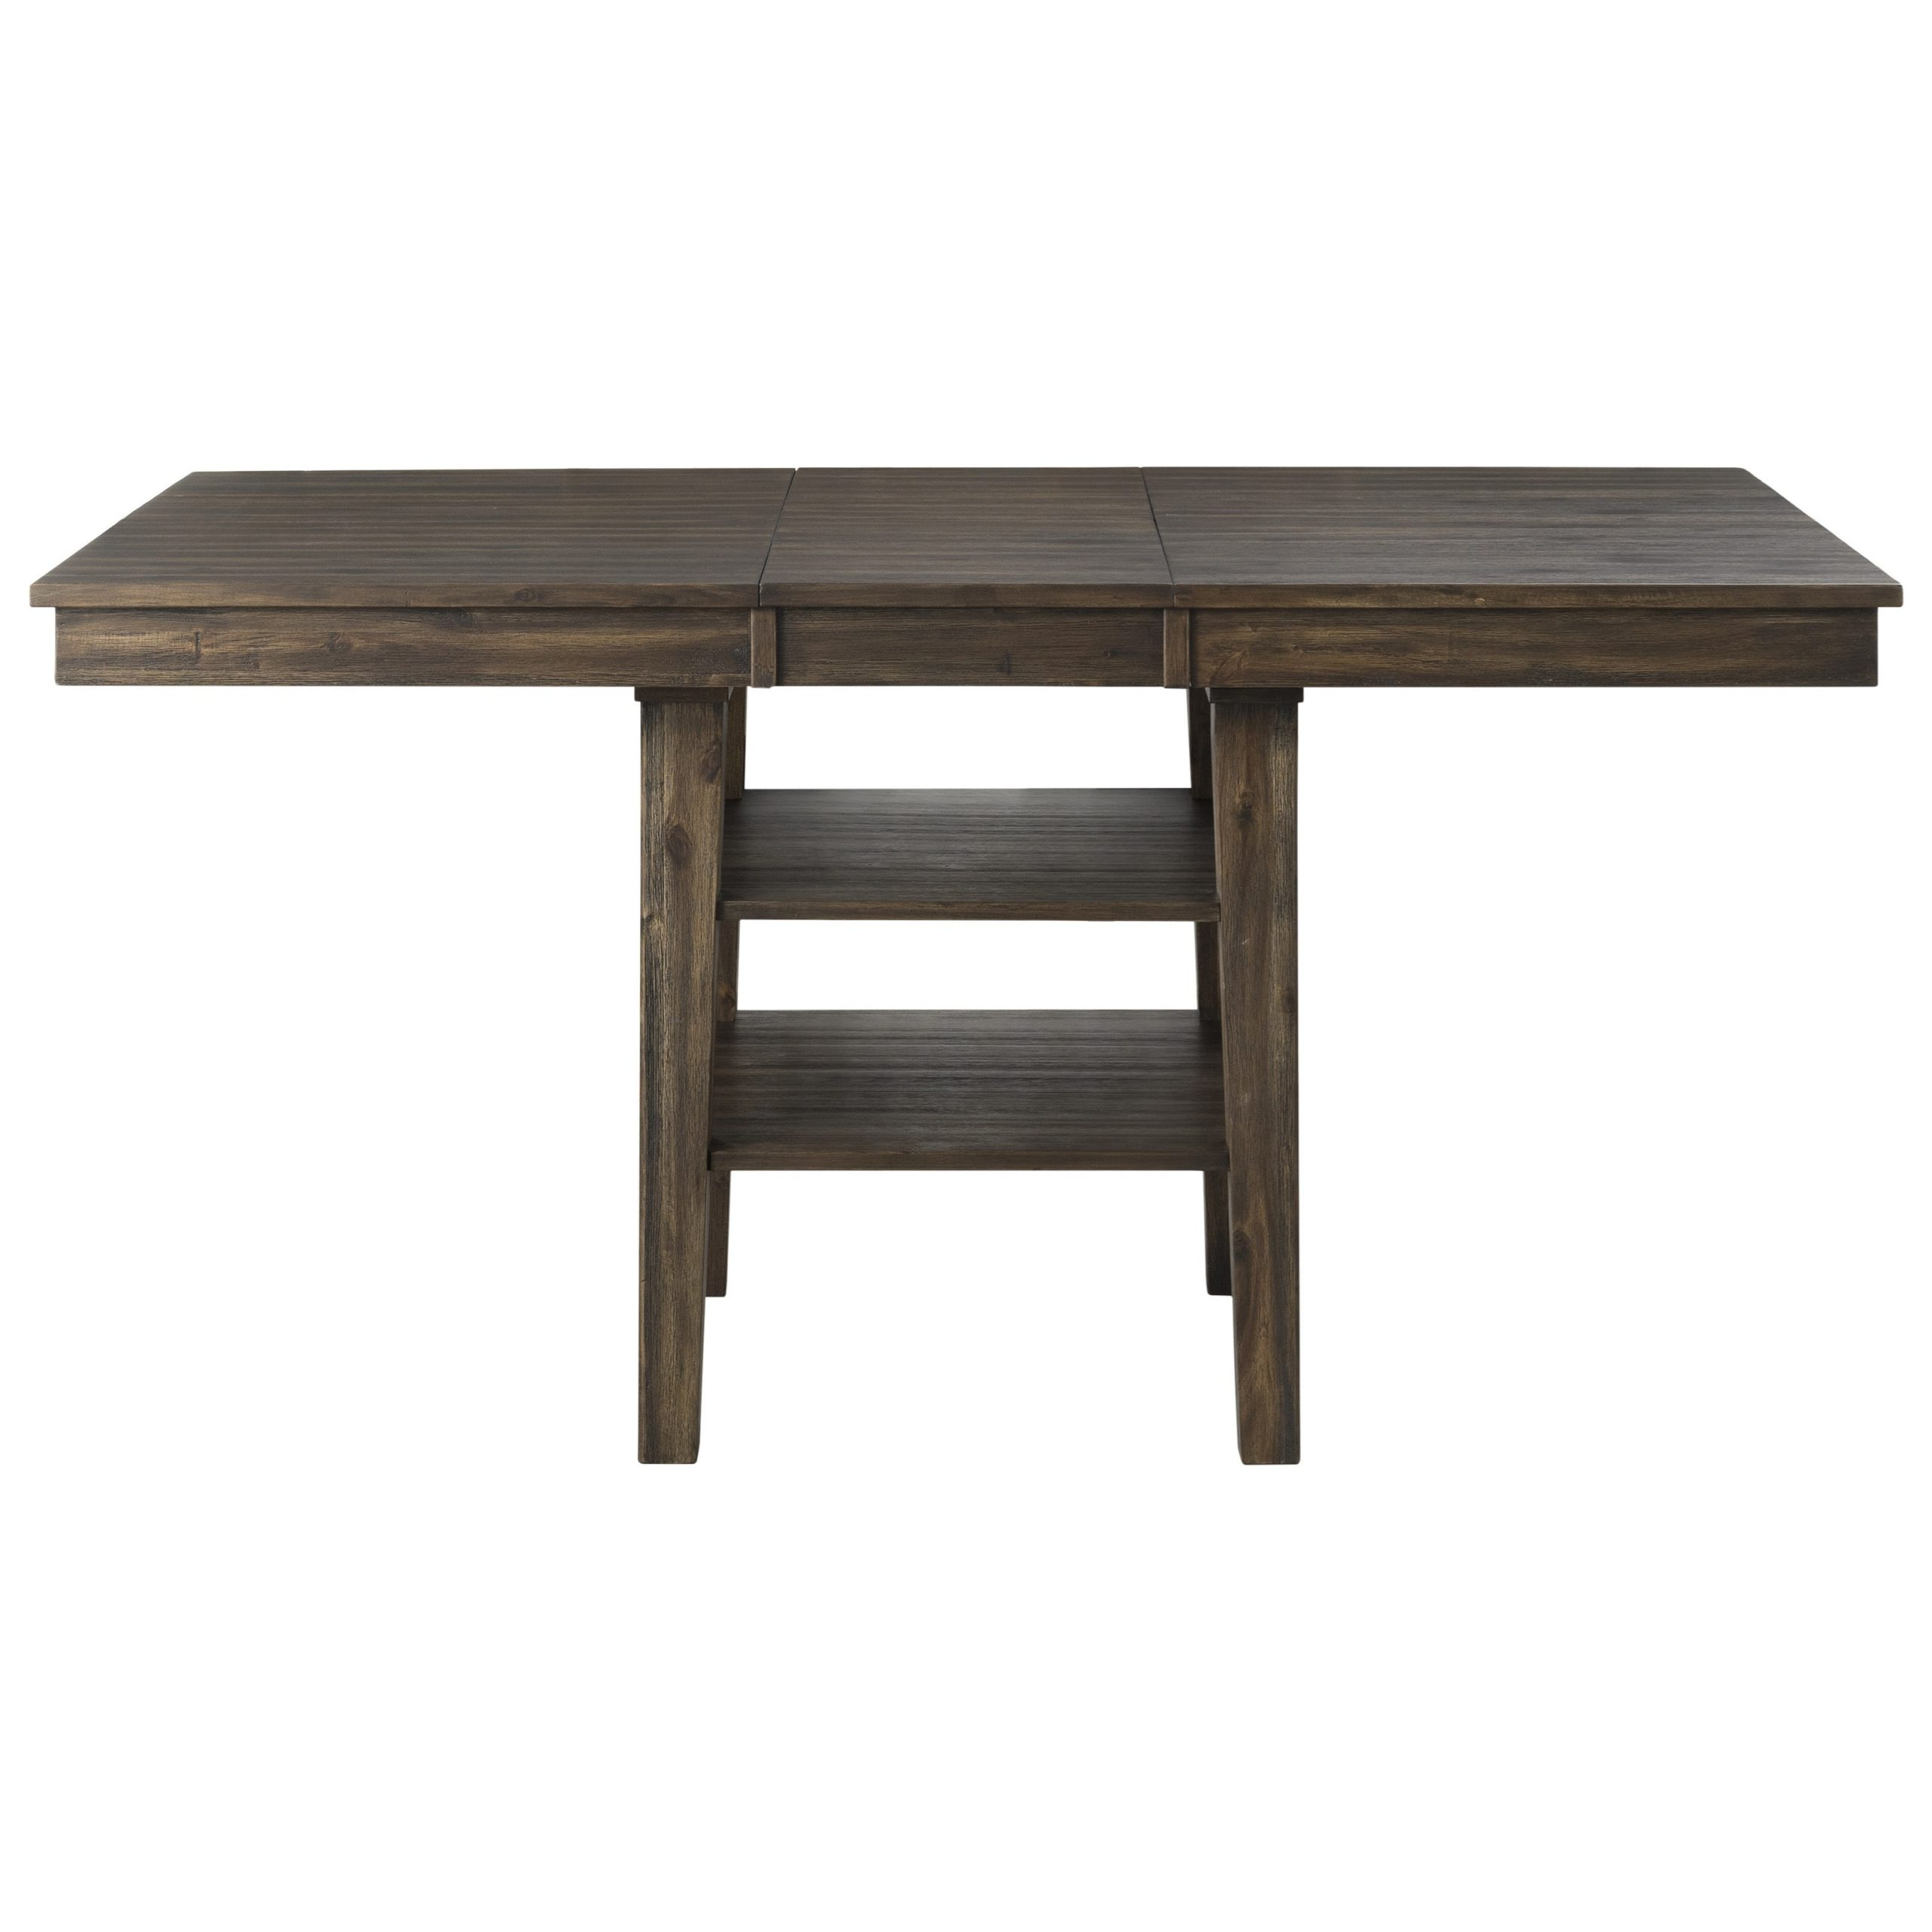 Aamerica Huron Transitional Solid Wood Counter Height With Regard To Best And Newest Andreniki Bar Height Pedestal Dining Tables (View 12 of 15)